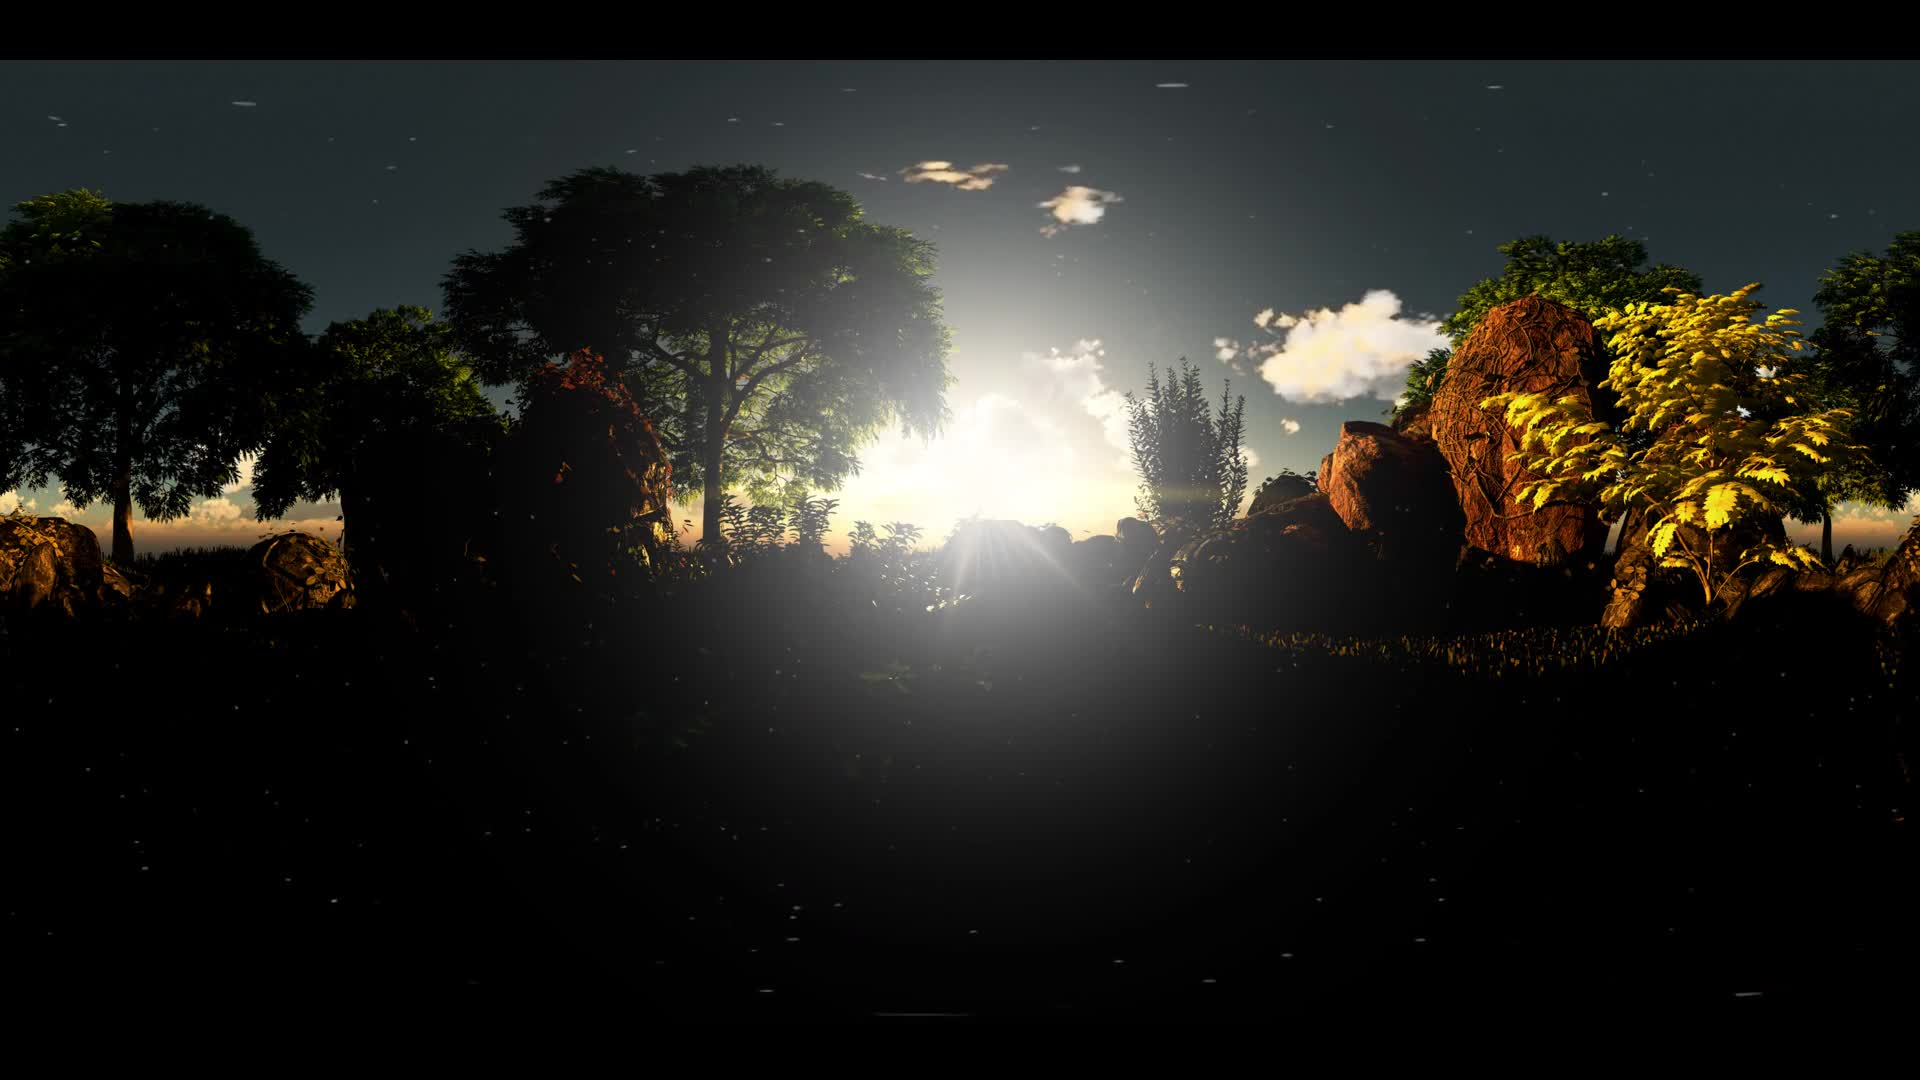 vr 360. timelapse of cloud sunset and pine trees at rocky field in virtual reality 360 degree video